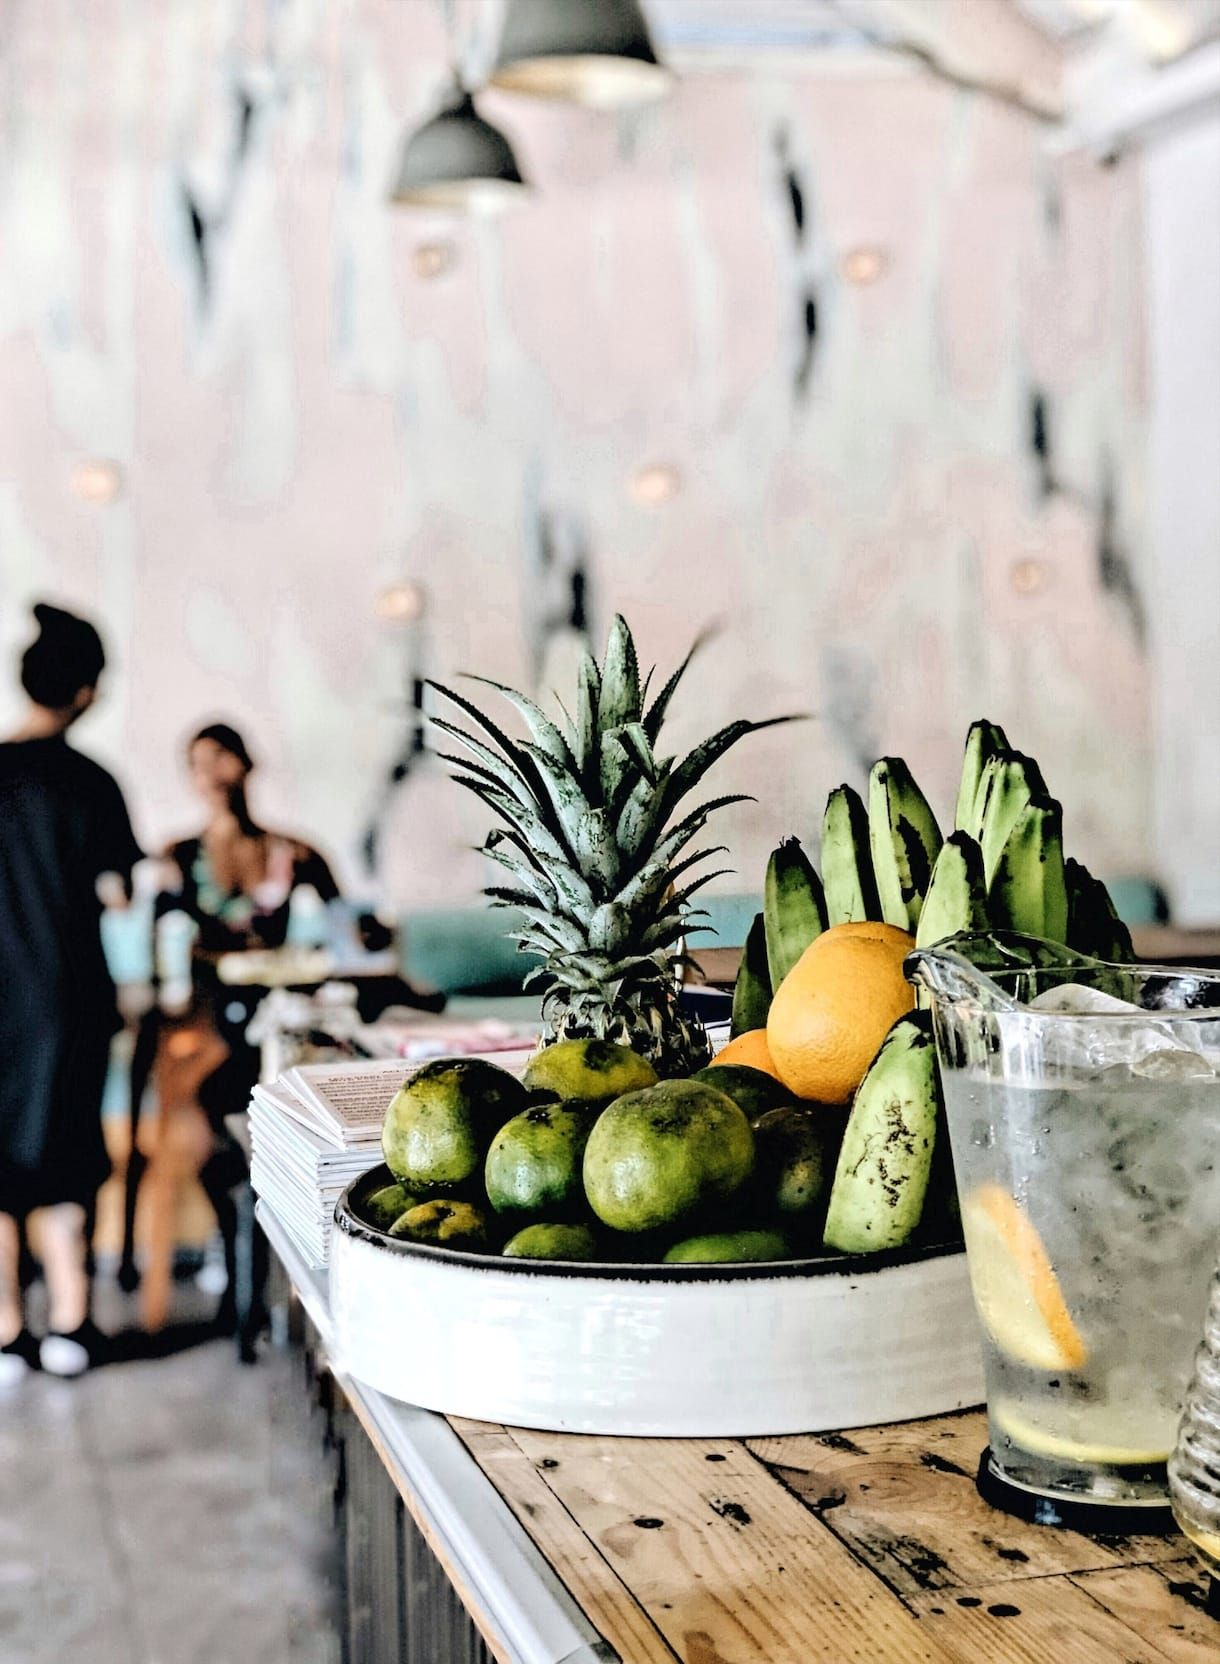 5 Healthy, Vibrant Places to Eat in Canguu Bali (that aren